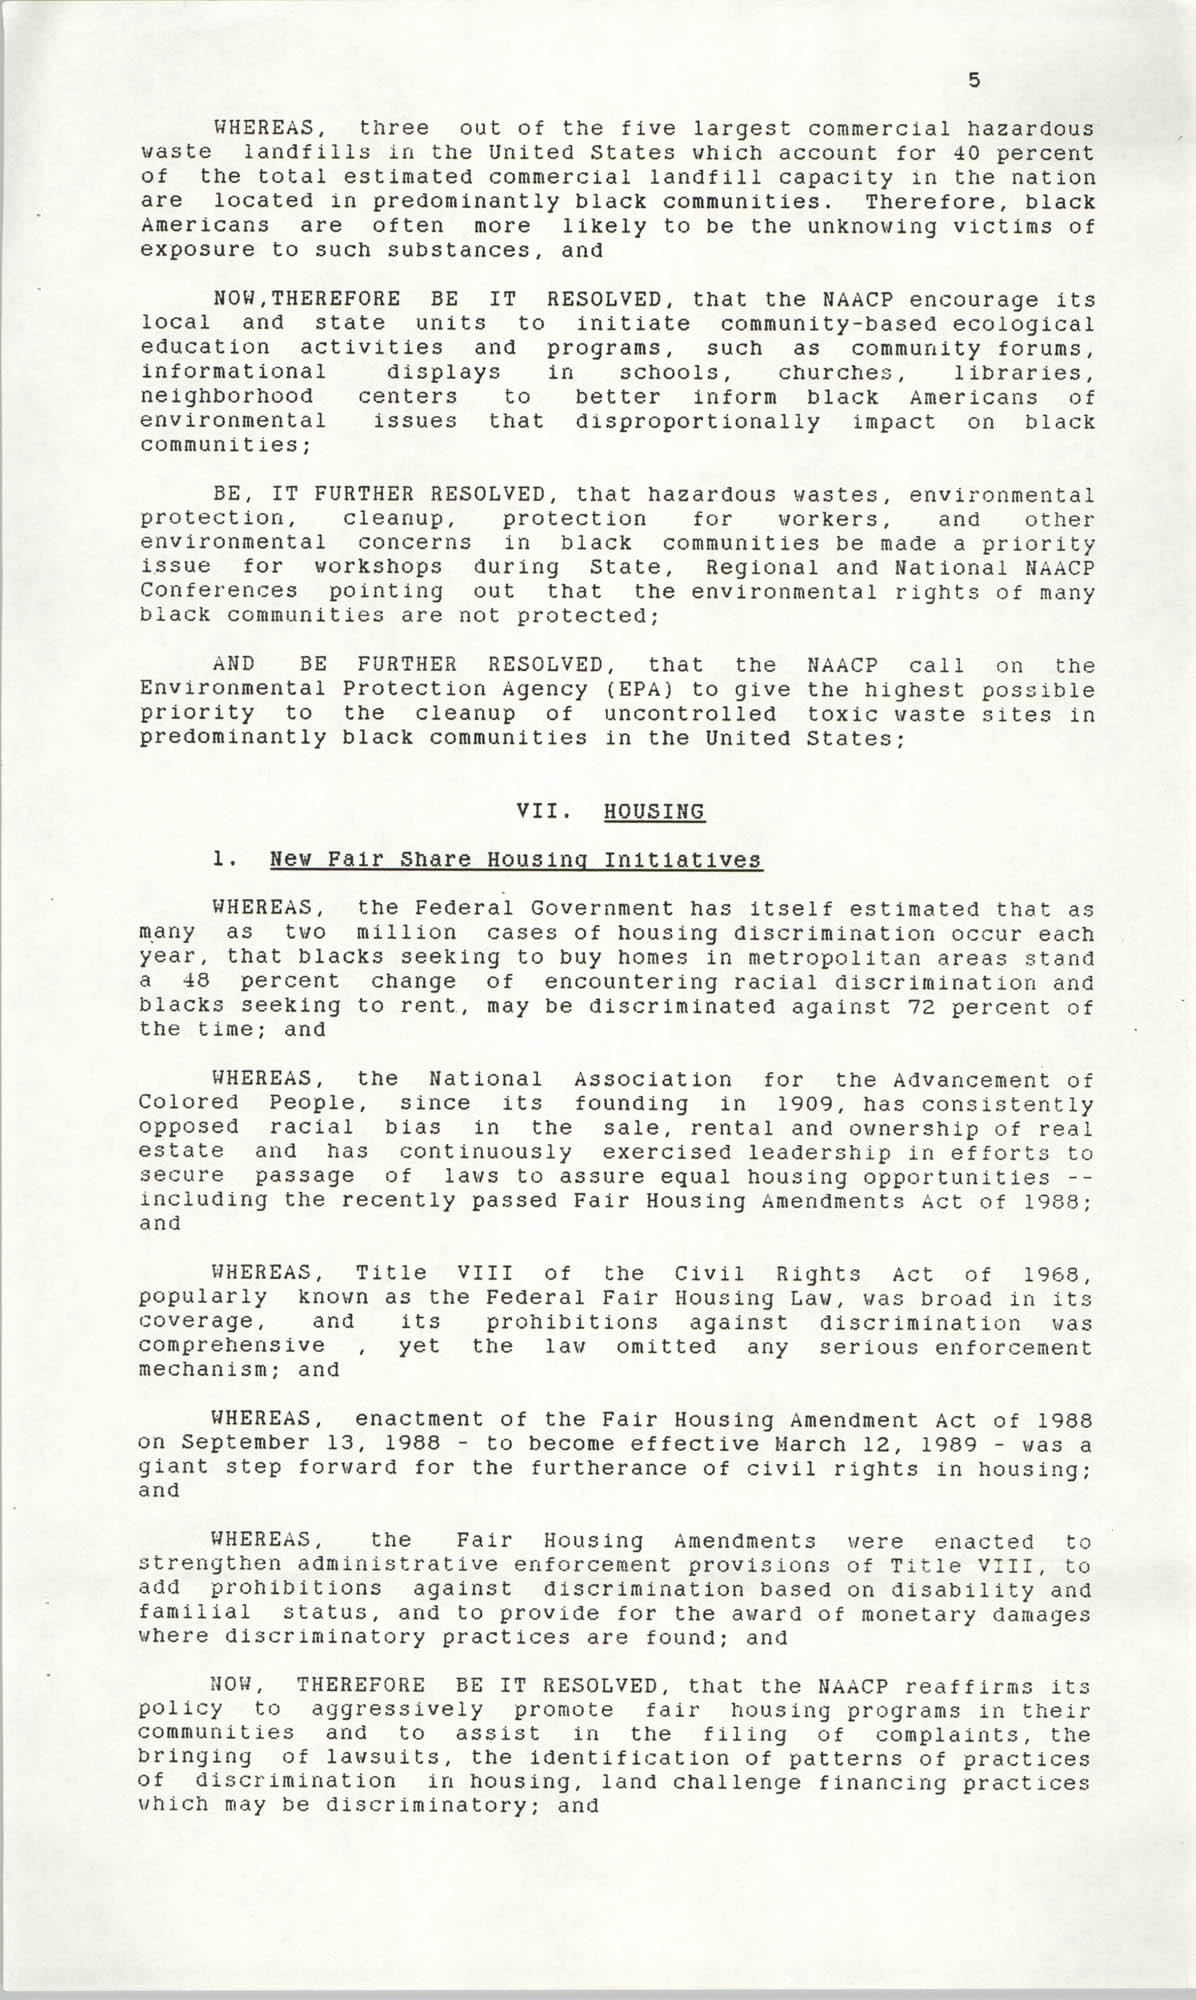 Resolutions Submitted Under Article X, Section 2 of the Constitution of the NAACP, 1990, Page 5